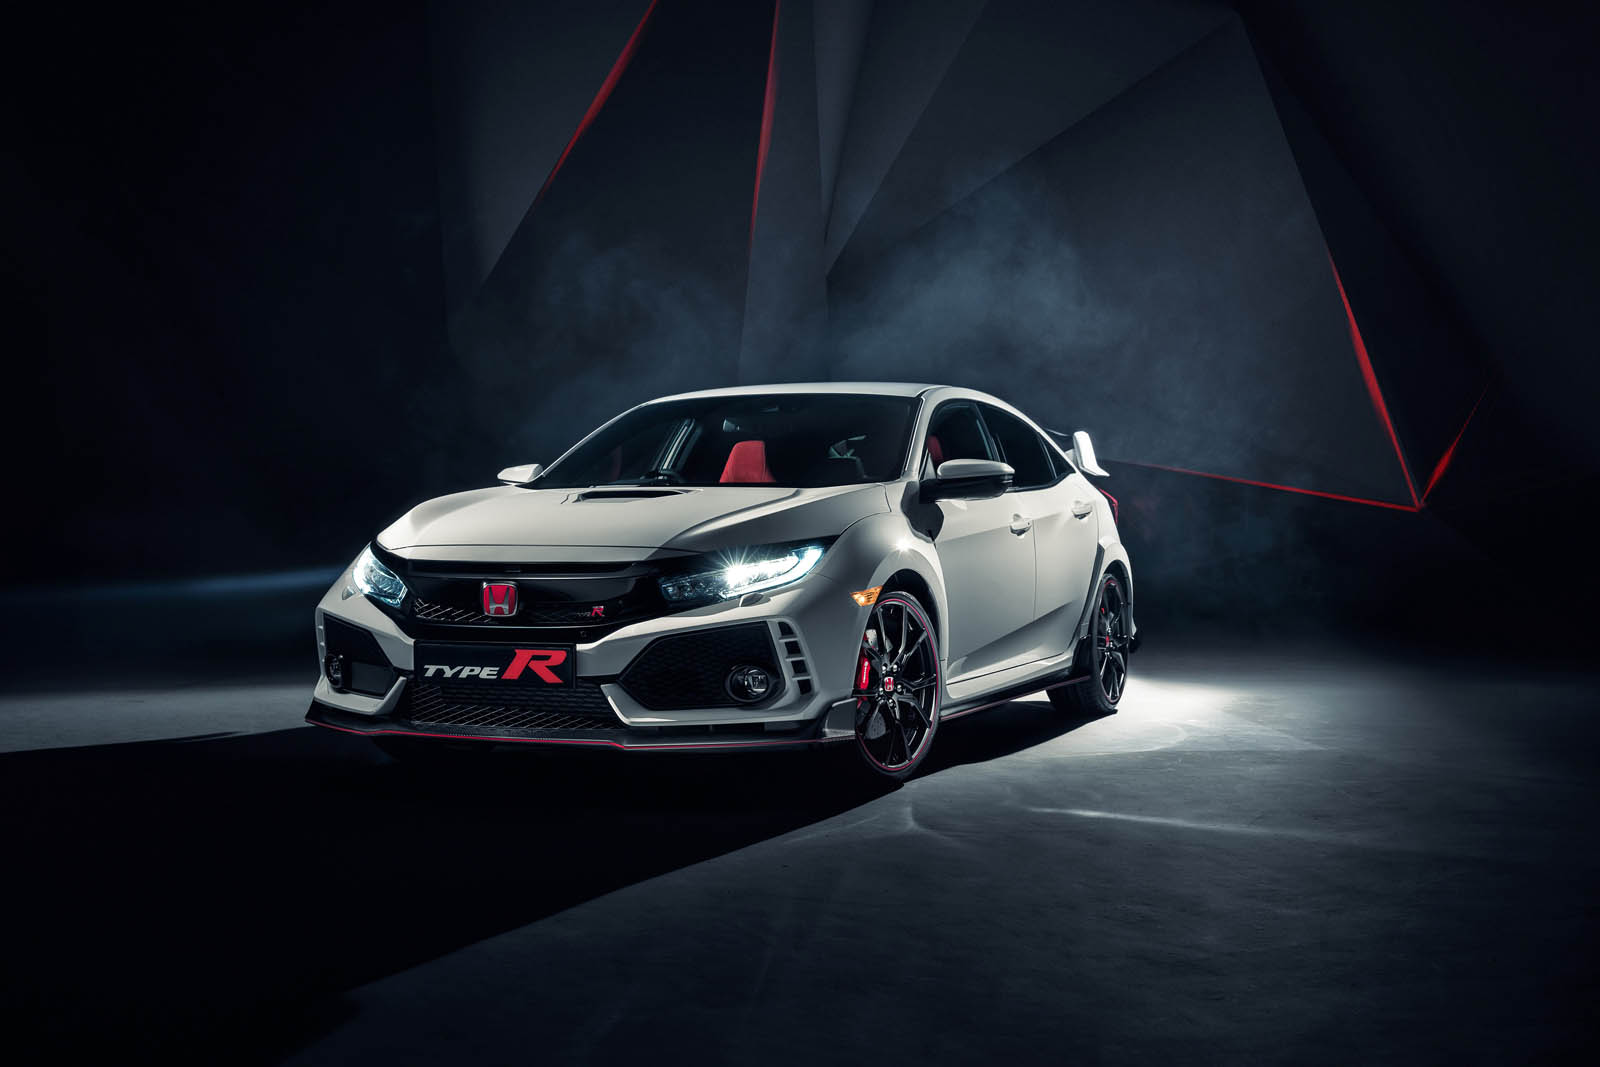 104496_all_new_honda_civic_type_r_races_into_view_at_geneva-copy